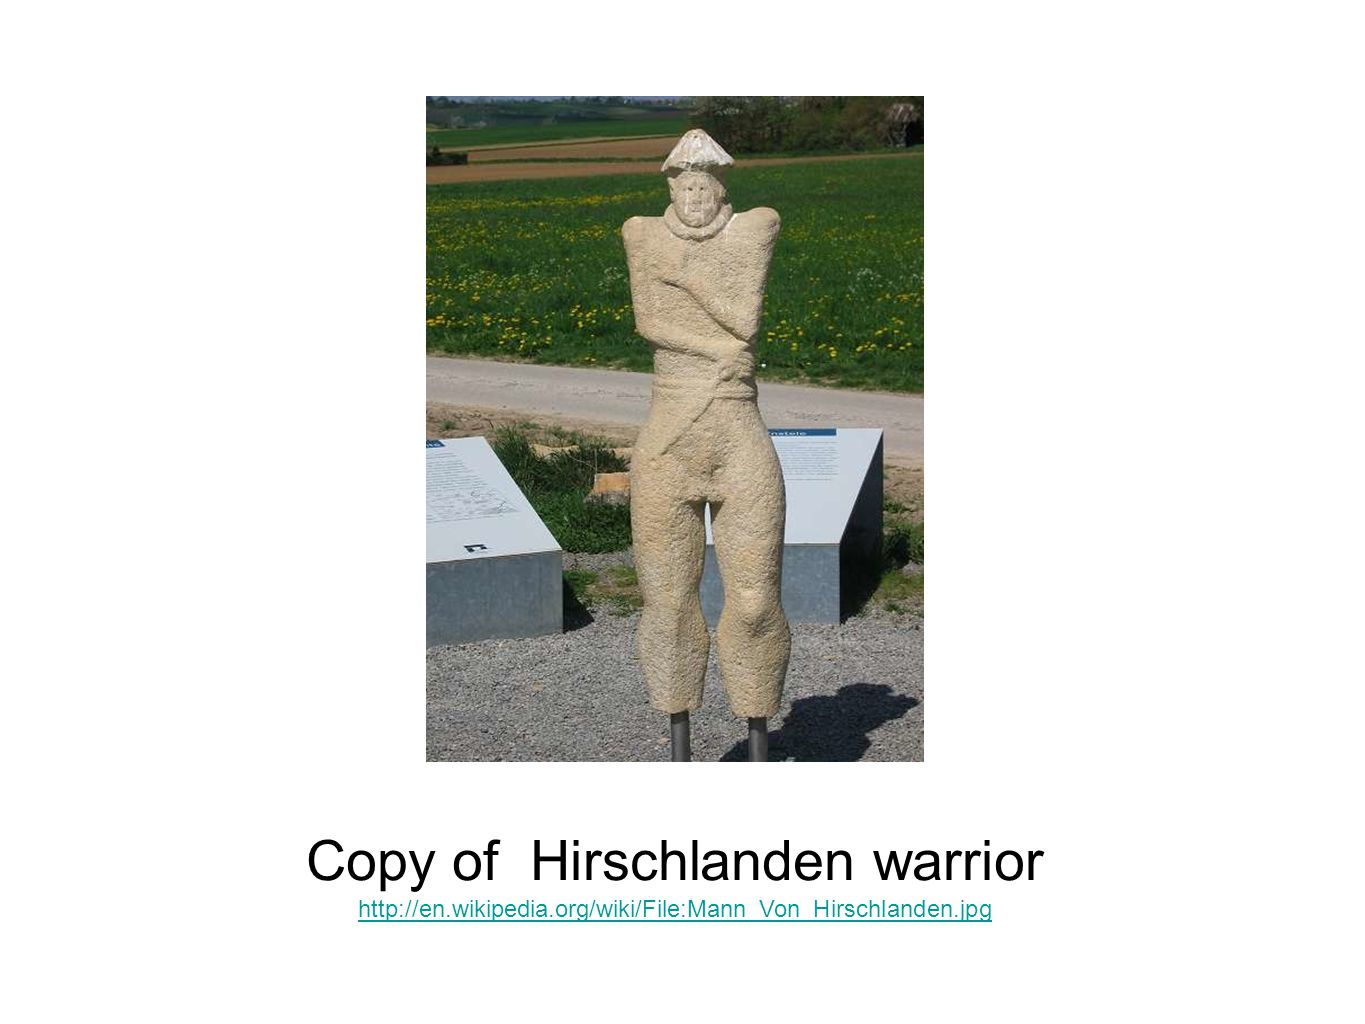 Copy of Hirschlanden warrior